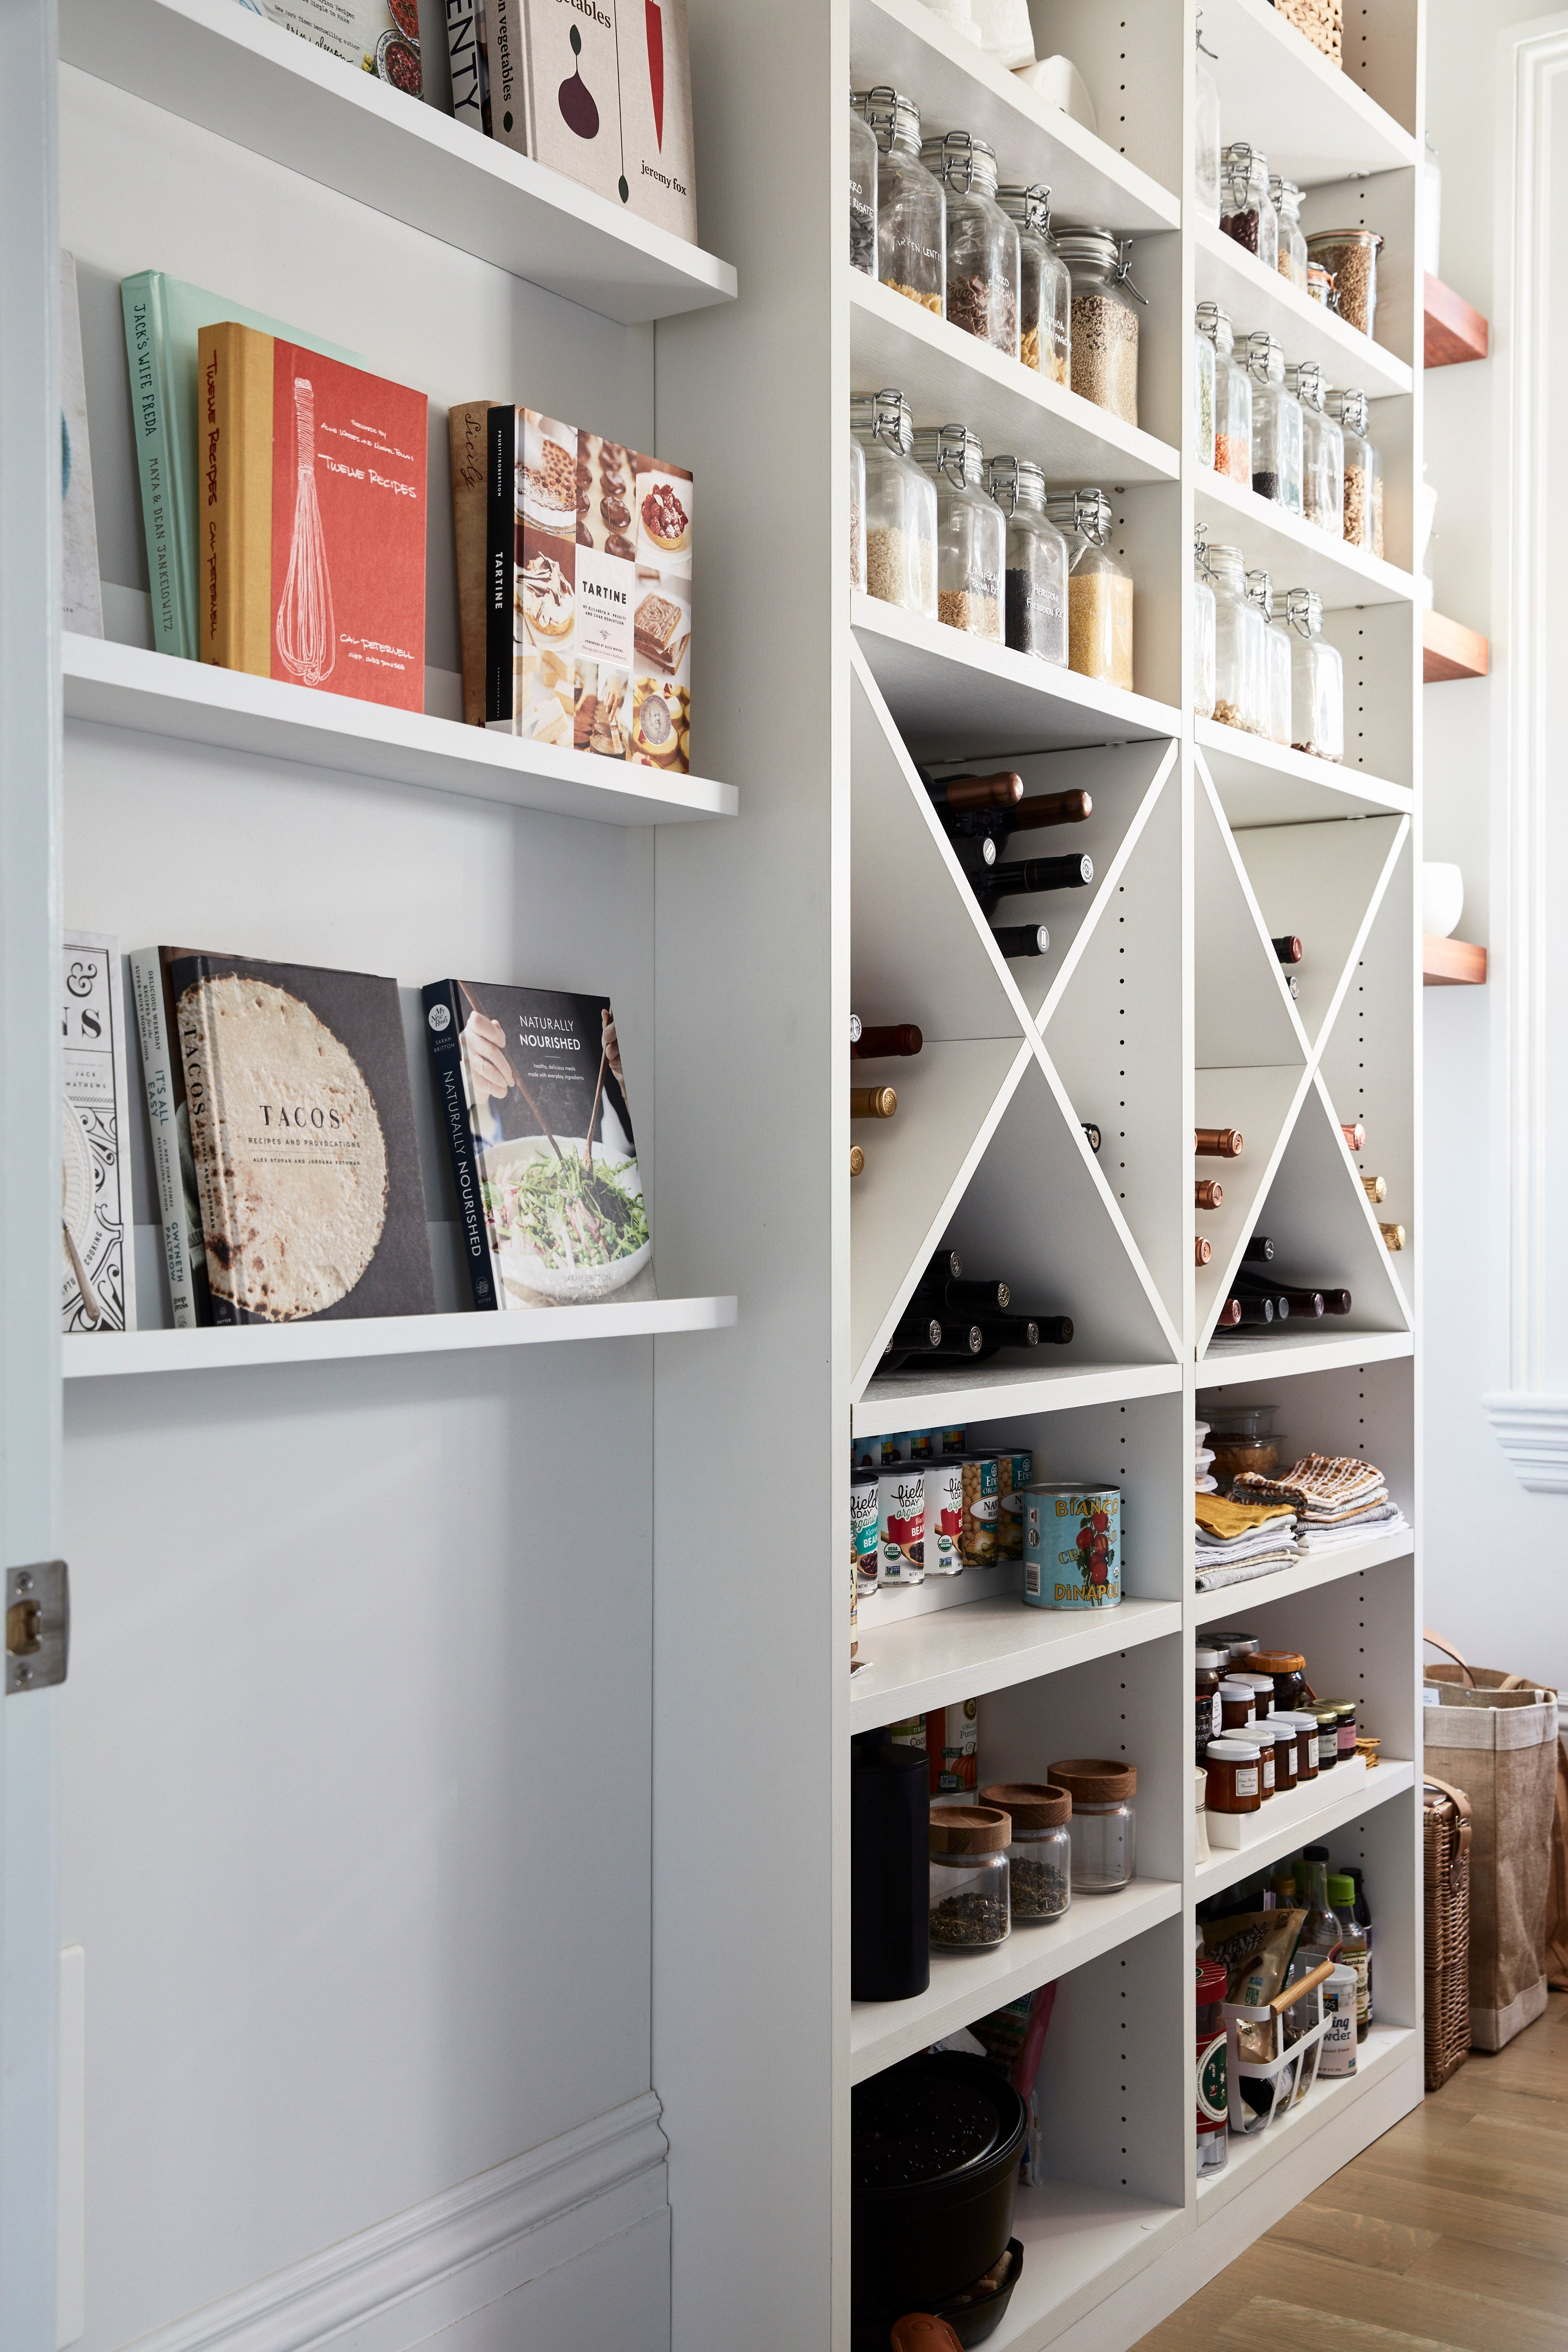 A Step-by-Step Guide to Organizing Your Kitchen Pantry